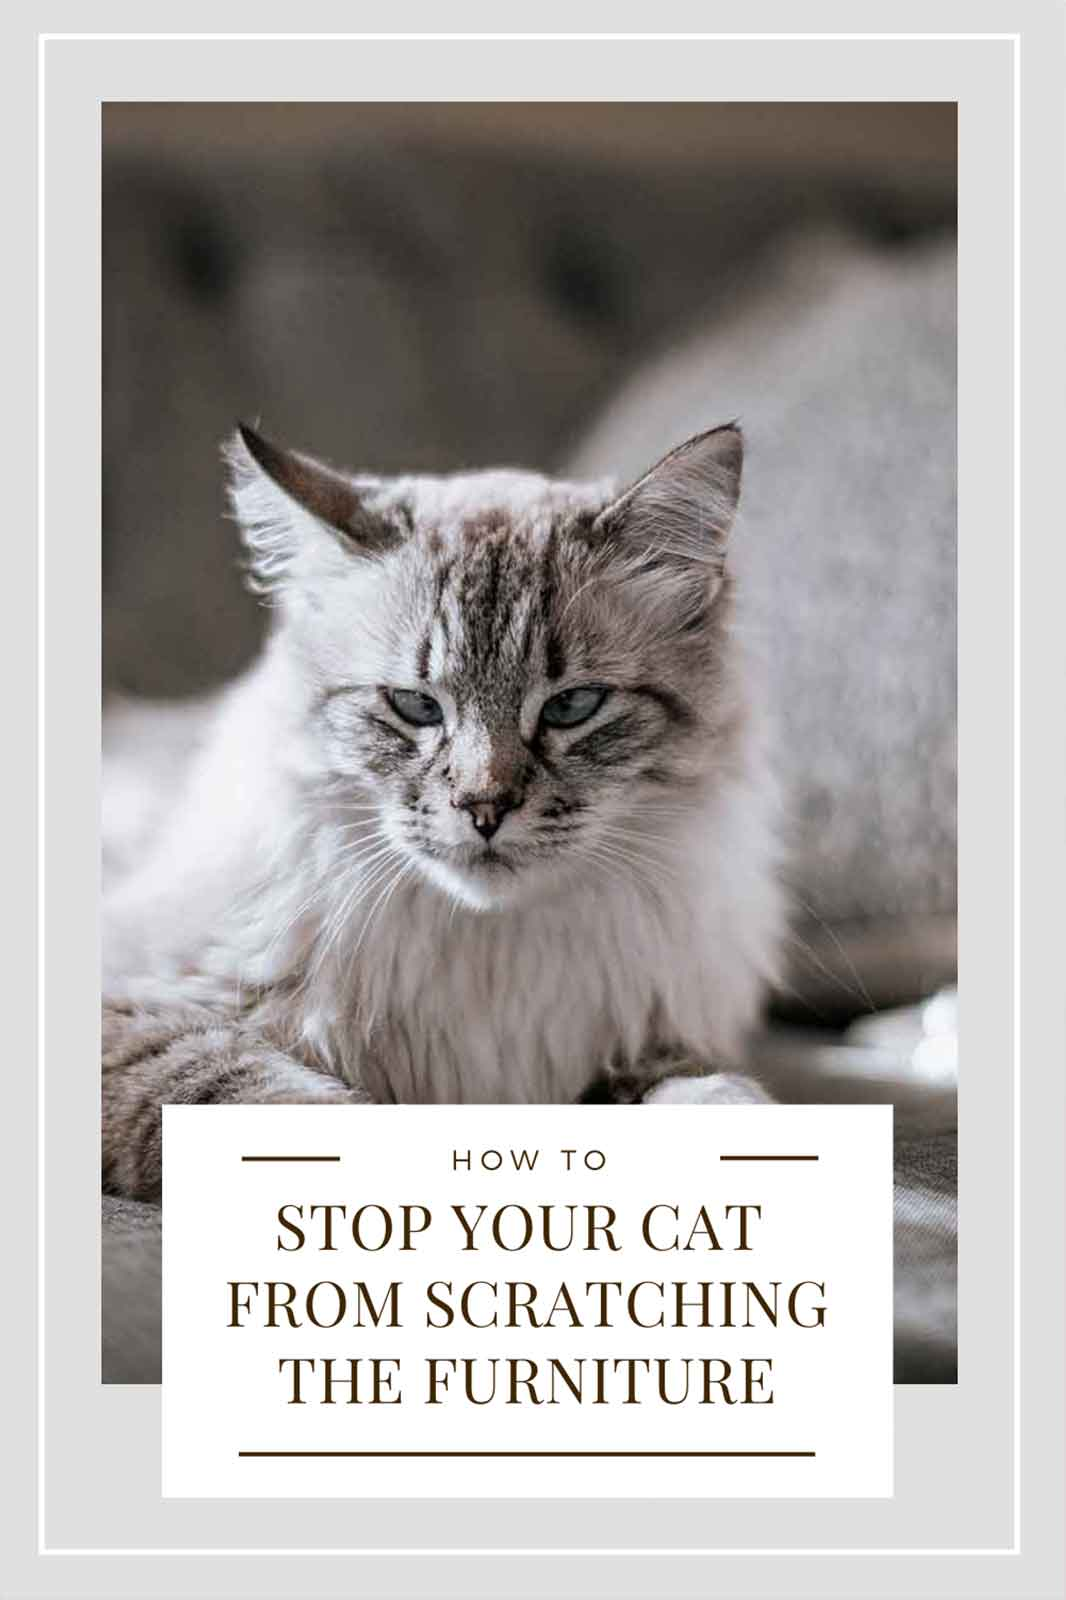 How to Stop Your Cat from Scratching the Furniture